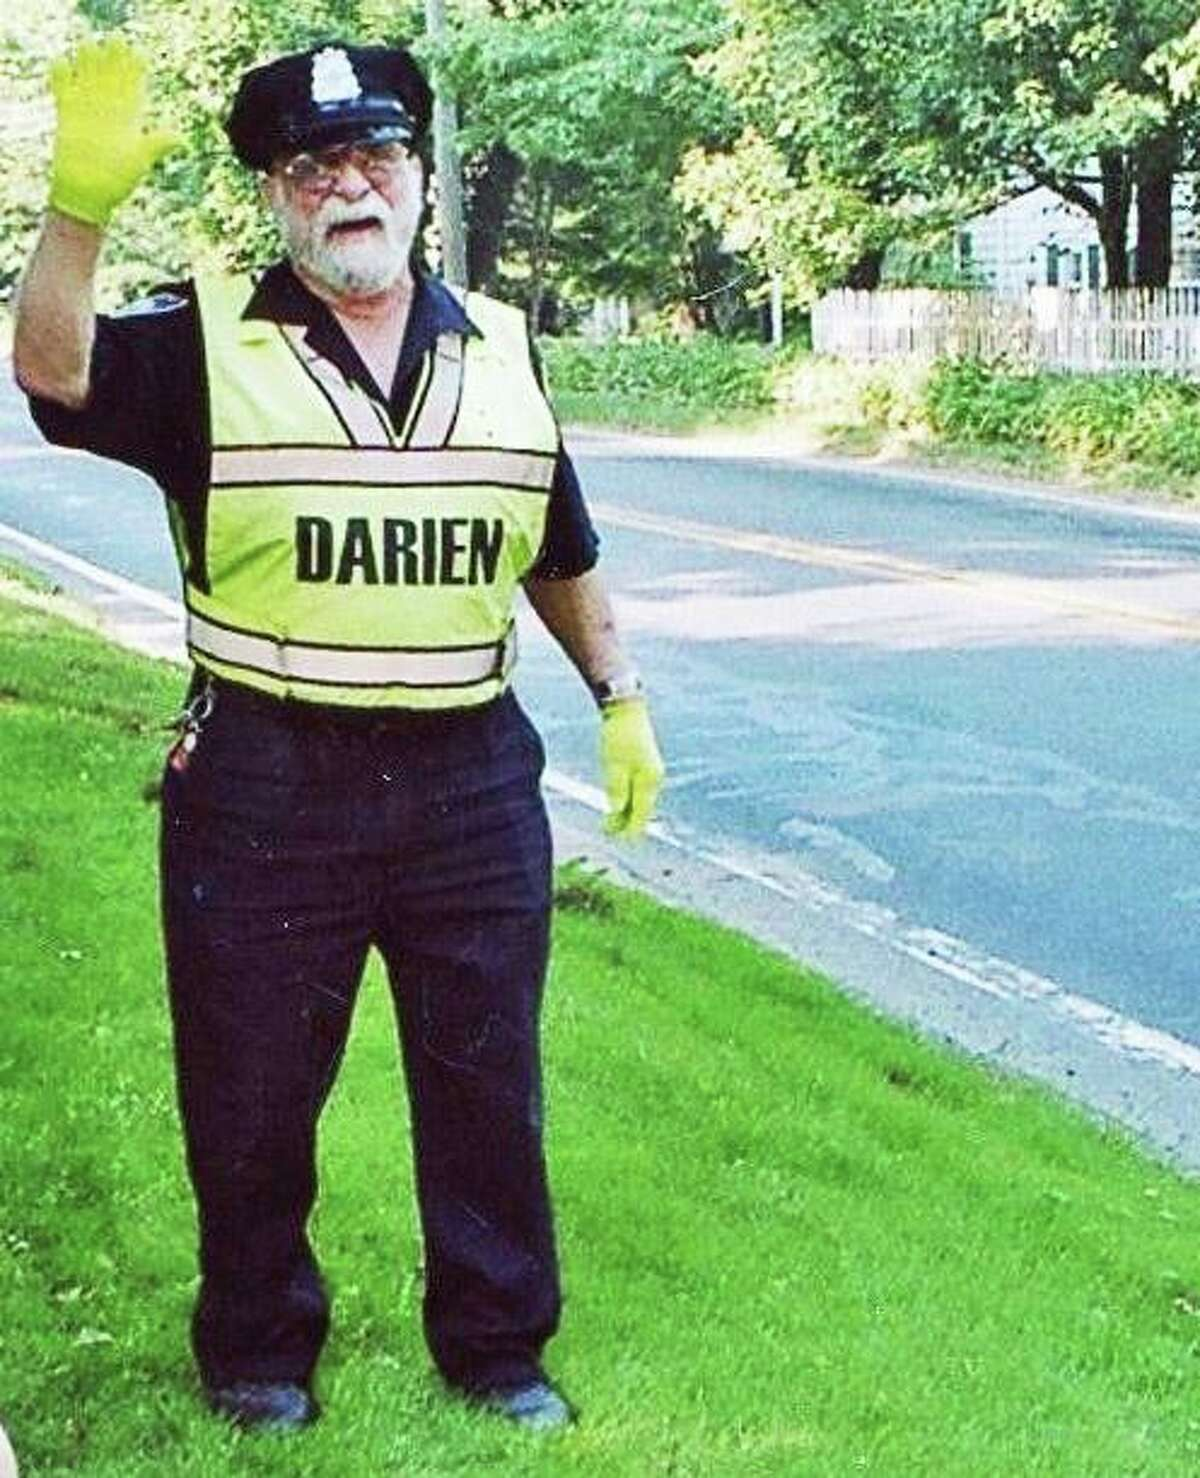 Bob, a longtime Darien crossing guard who lived in Norwalk, died recently at 93. Bob served during World War II in a bomber plane.